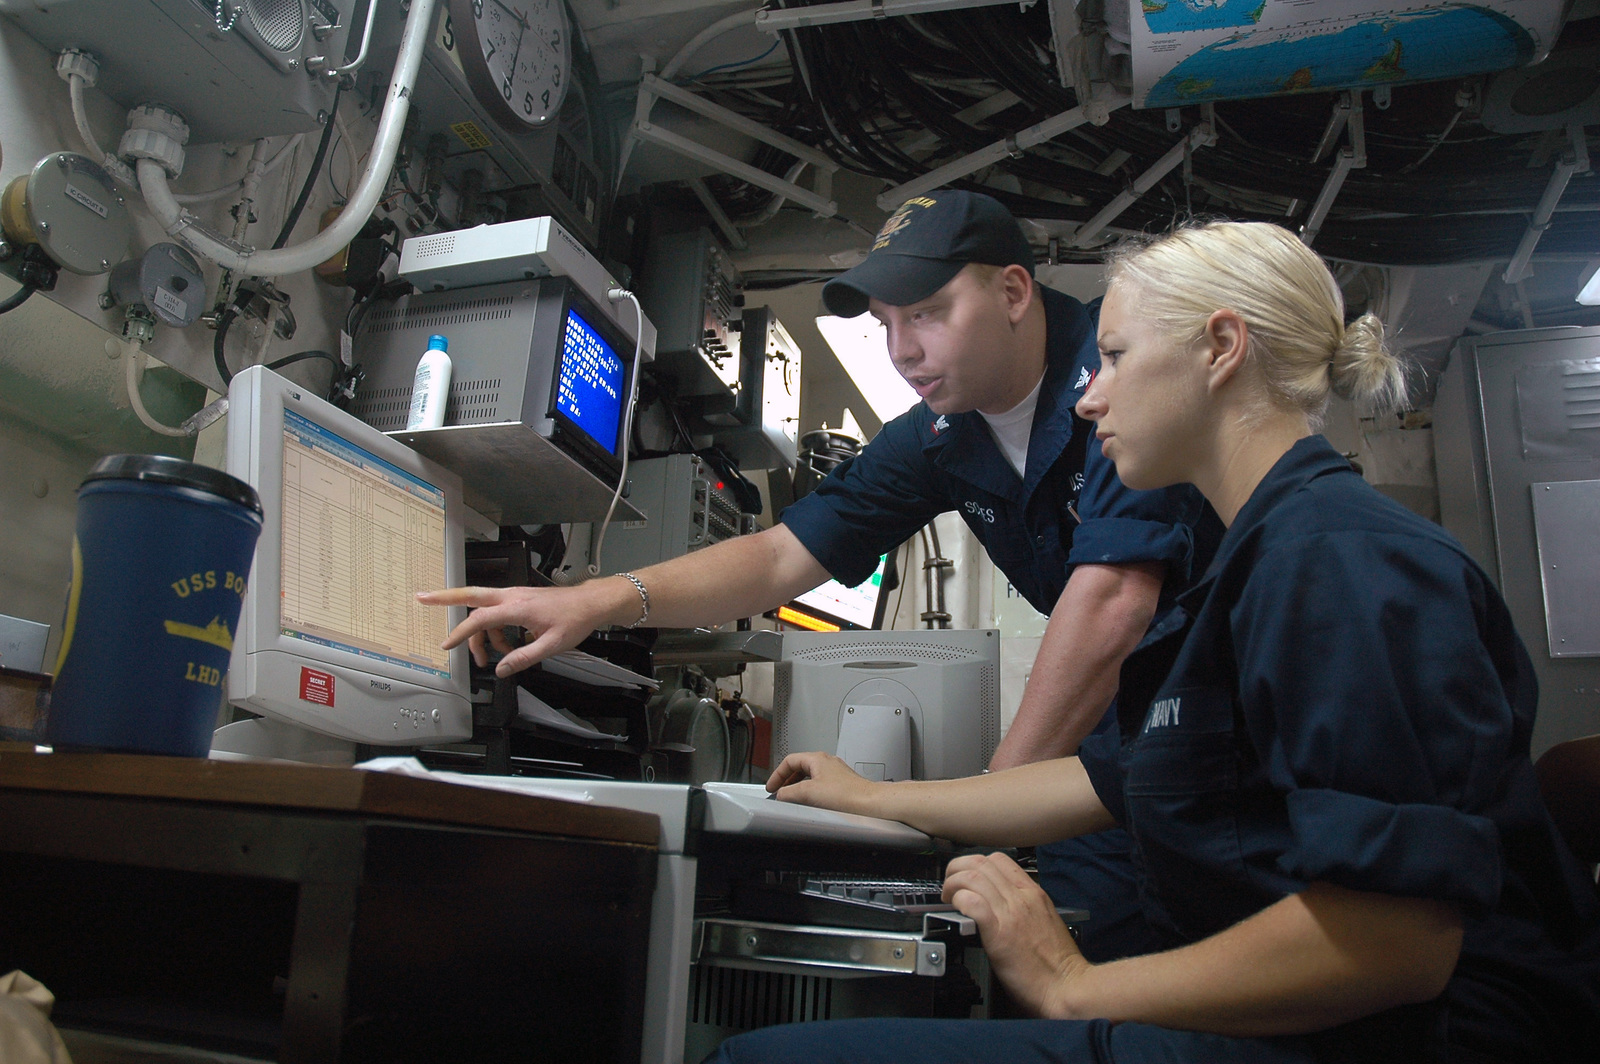 060721-N-5914D-001 (Jul. 21, 2006)US Navy (USN) Aerographer's Mate Third Class Daniel Scites (rear) shows USN SEAMAN Olivia Mailander how to read weather charts aboard the USN Wasp Class Amphibious Assault Ship USS BOXER (LHD 4).  The BOXER is part of Expeditionary Strike Group (ESG) 5 which is currently participating in the Composite Training Unit Exercise (COMPTUEX) off the coast of Southern California.U.S. Navy photo by Mass Communication SPECIALIST Third Class Noel Danseco (RELEASED)